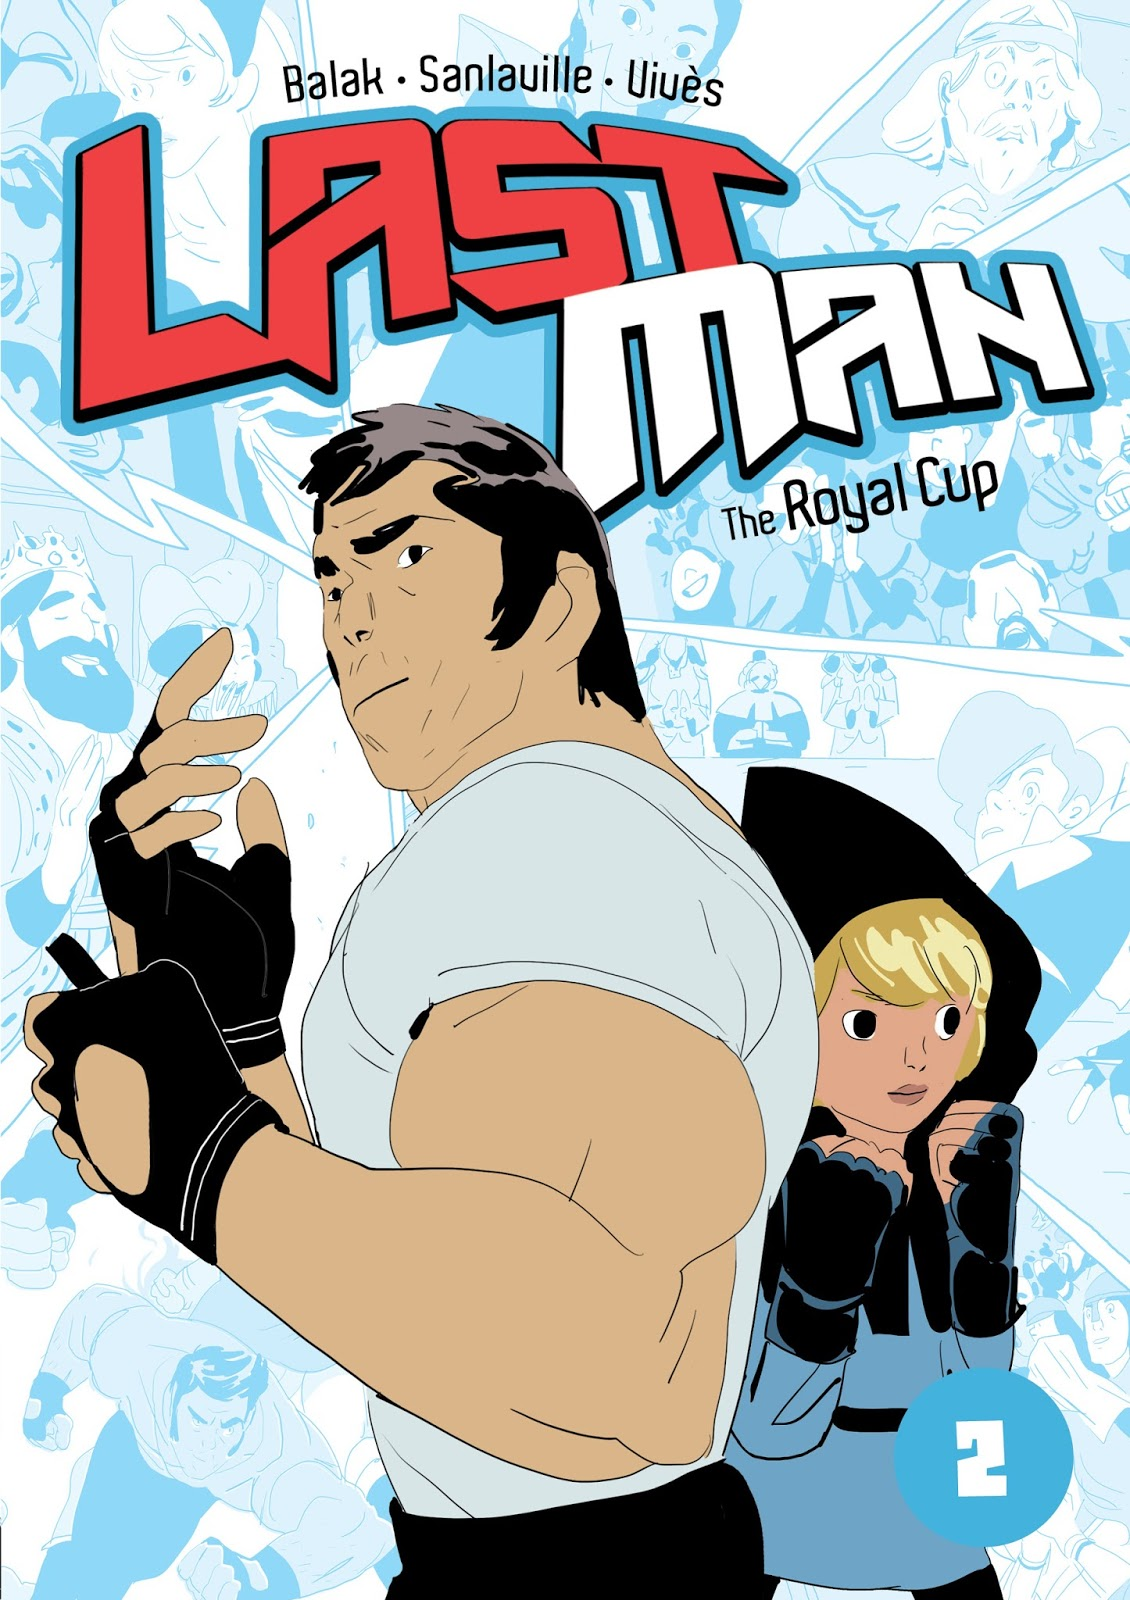 Last Man, Book 2: The Royal Cup